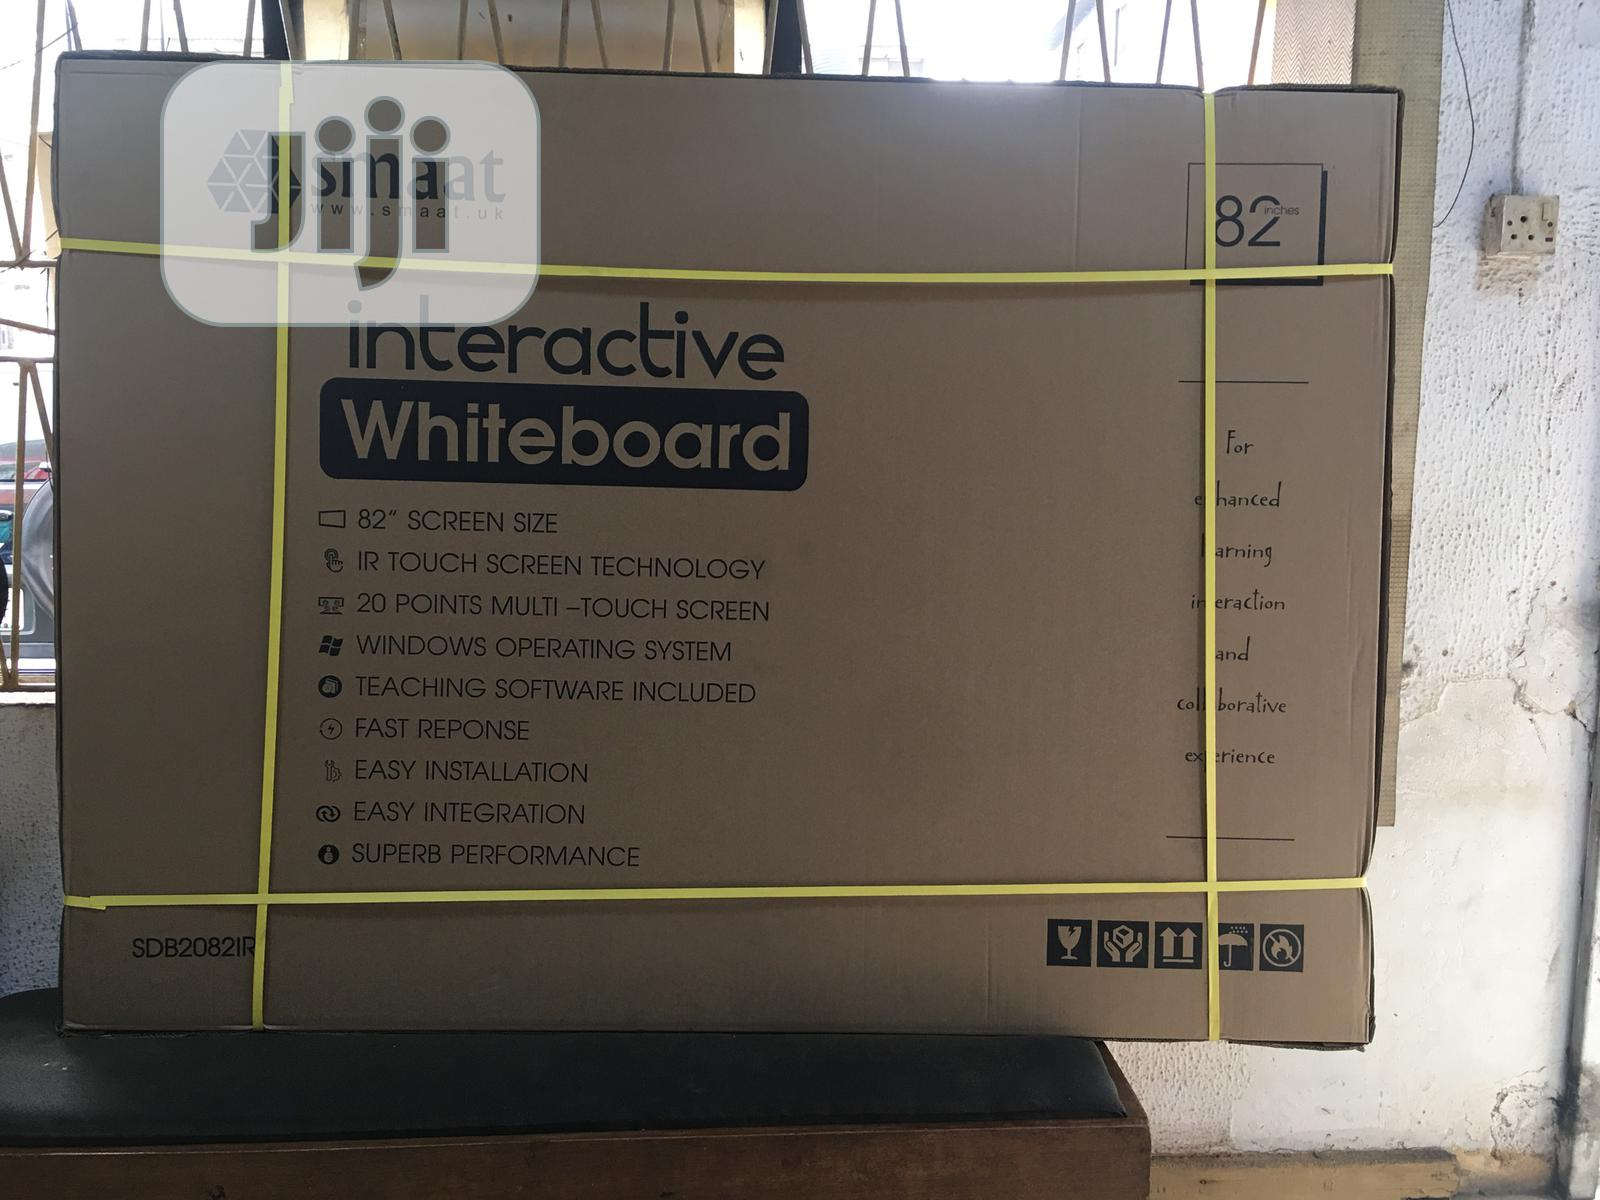 Archive: 82 Inch Smaat Interactive Whiteboard